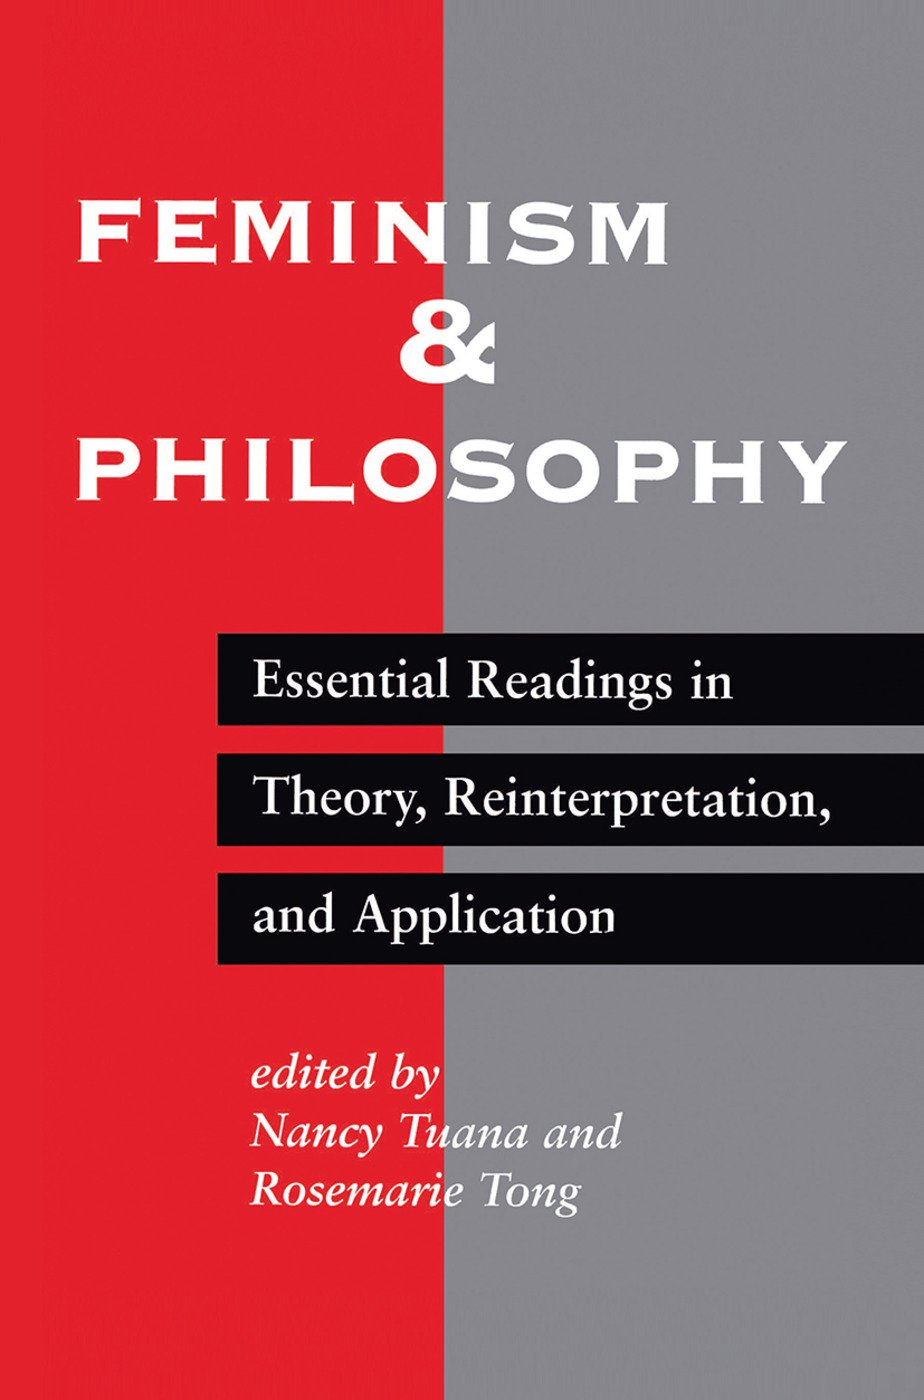 Feminism And Philosophy: Essential Readings In Theory, Reinterpretation, And Application book cover